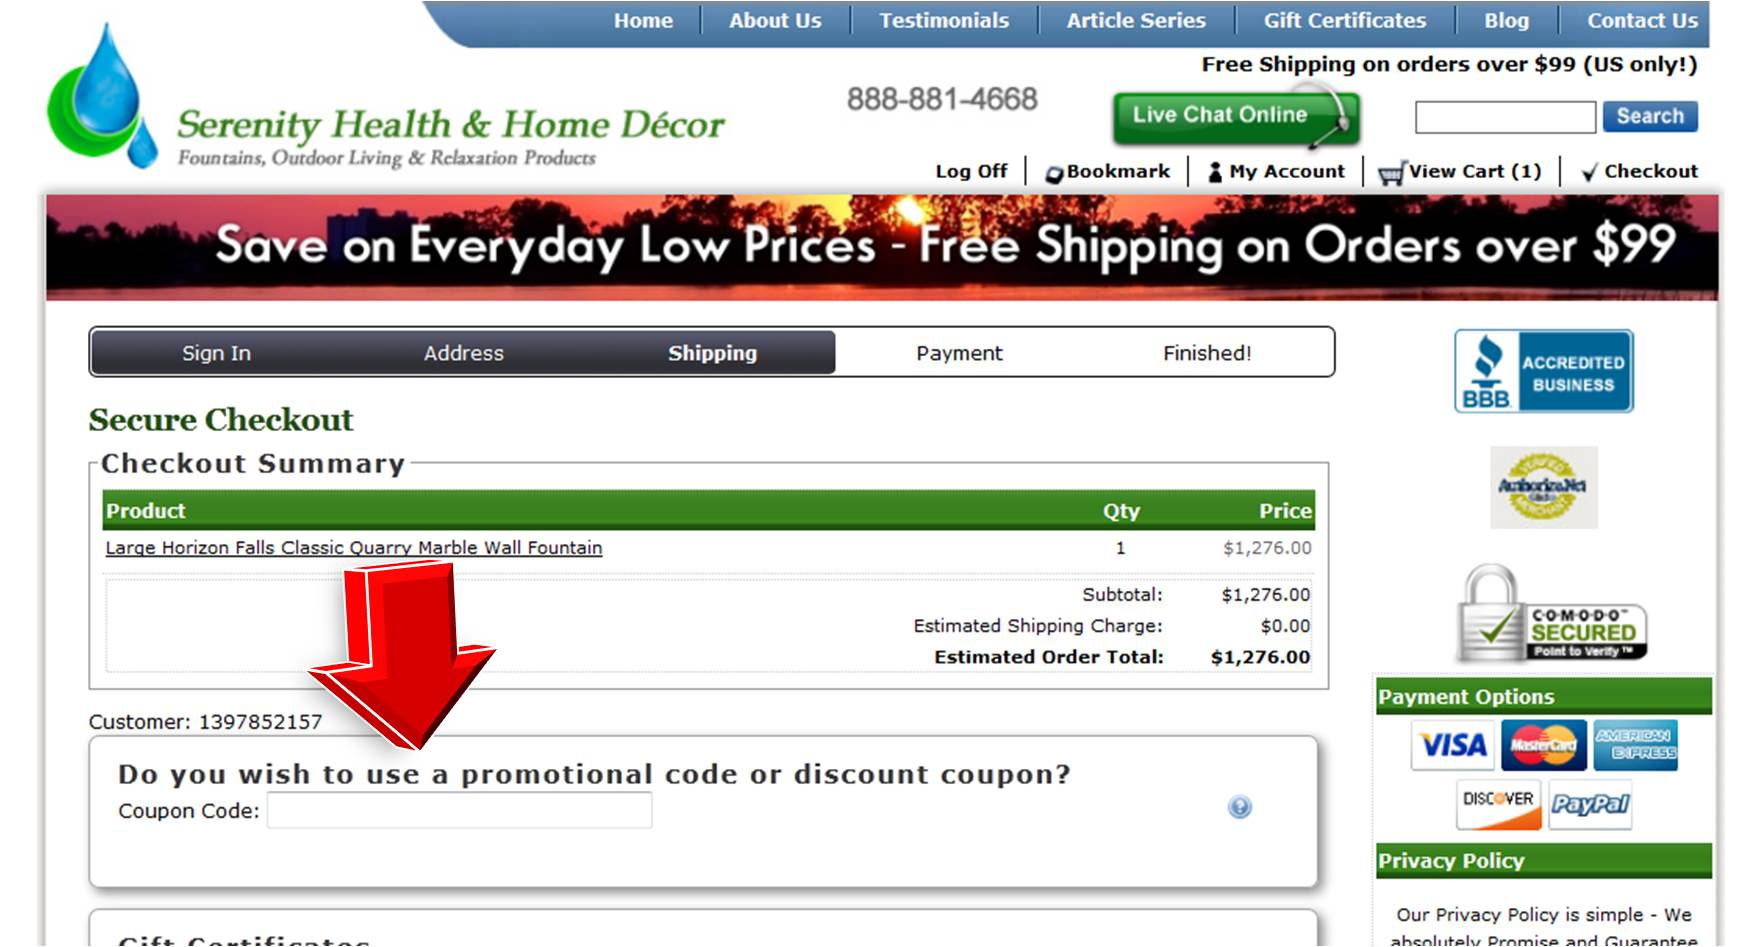 HealthPromotionsNow is your number one source for finding appreciation gifts and promotional products related to health, fitness, and wellness. Find a wide range of customizable apparel, calendars, clocks, watches, drinkware, golf gear, kitchen & home products, toys, bags, writing instruments, and more at highly affordable costs.